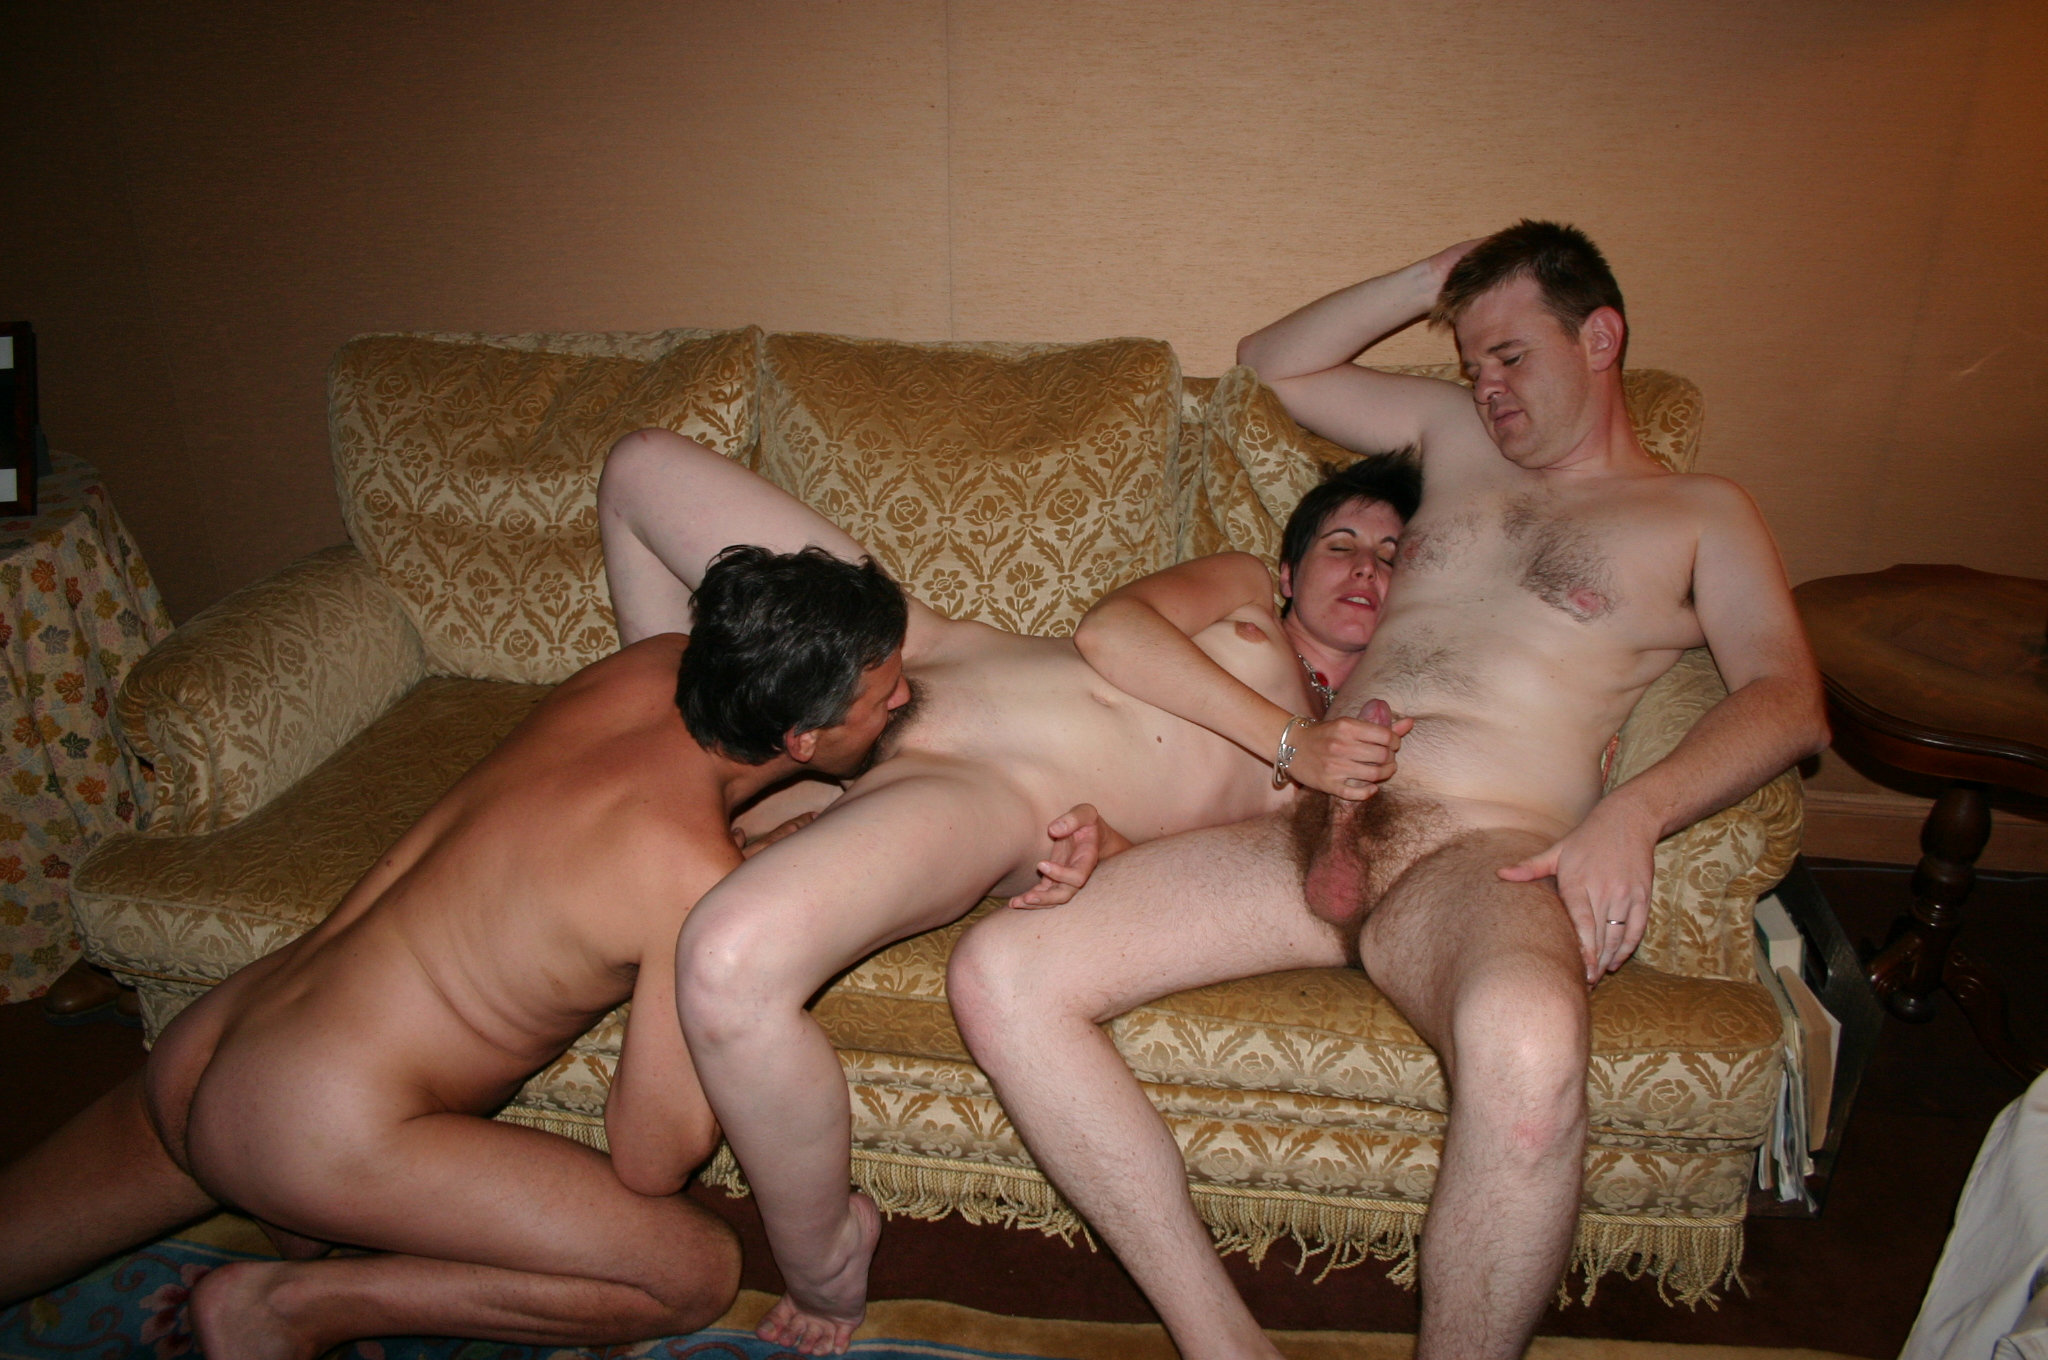 Ameture orgy galleries images 219